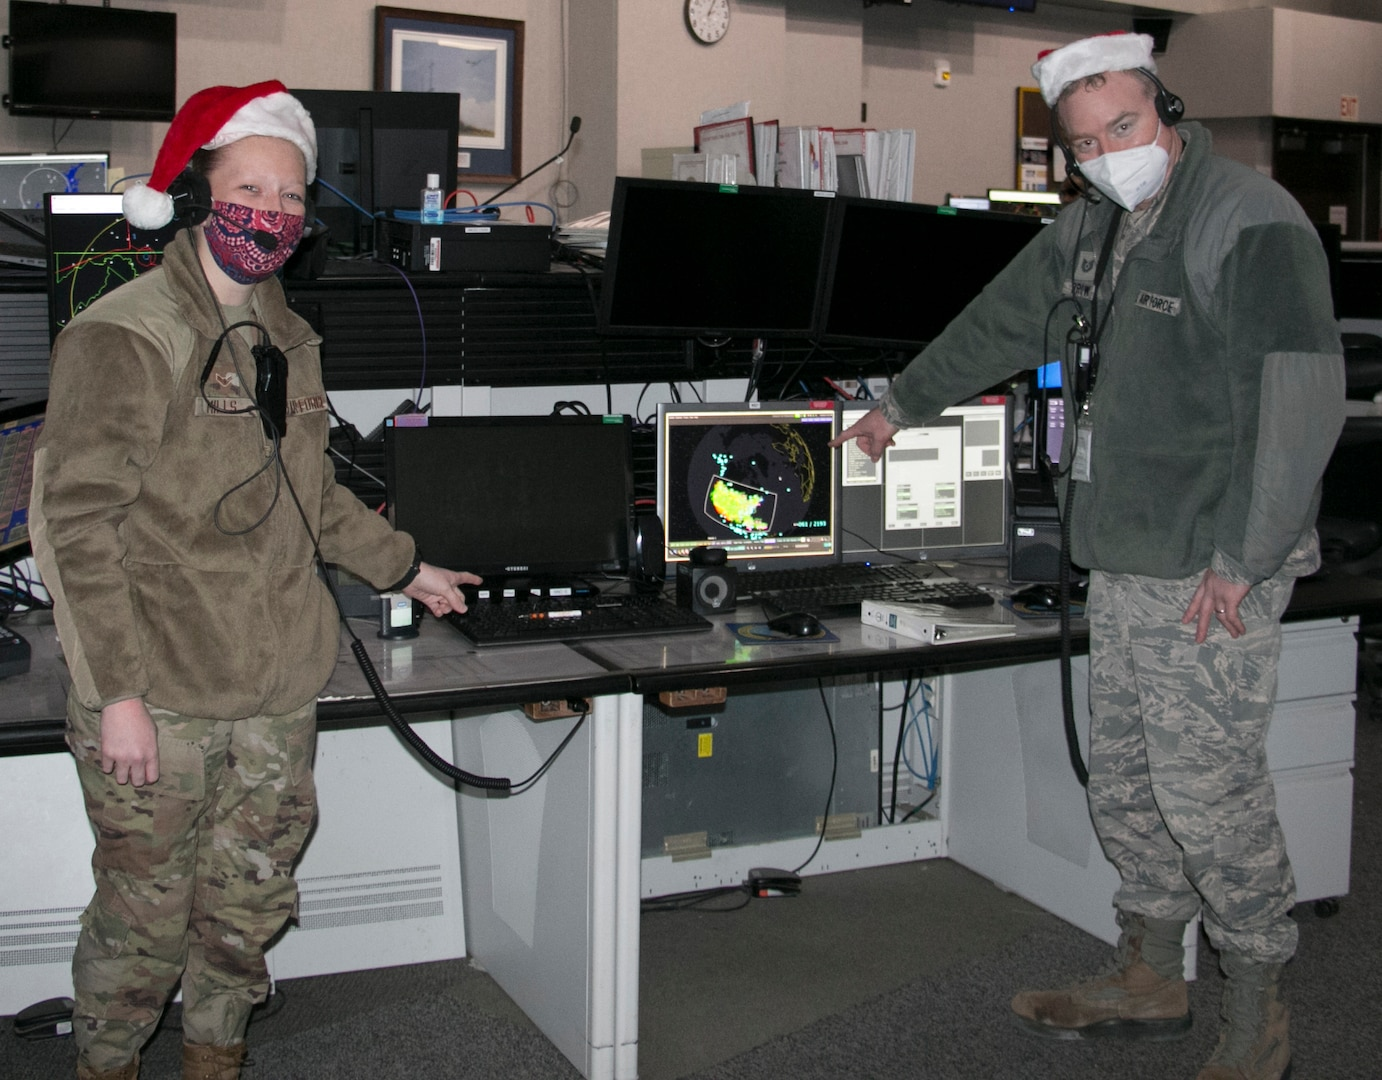 New York Air National Guard Airman 1st Class Megan Mills, left, and Tech. Sgt. Kriston Brown participate in a Santa tracking exercise at the Eastern Air Defense Sector on Dec. 16, 2020. Mills and Brown were prepping for Christmas Eve, when EADS will support the North American Aerospace Defense Command's (NORAD) Santa tracking operation. Tracking operations start at 4 a.m. EST on Dec. 24 on the www.noradsanta.org website. At 6 a.m. EST, children and parents can call toll-free to inquire about Santa at 1-877-Hi-NORAD (1-877-446-6723).